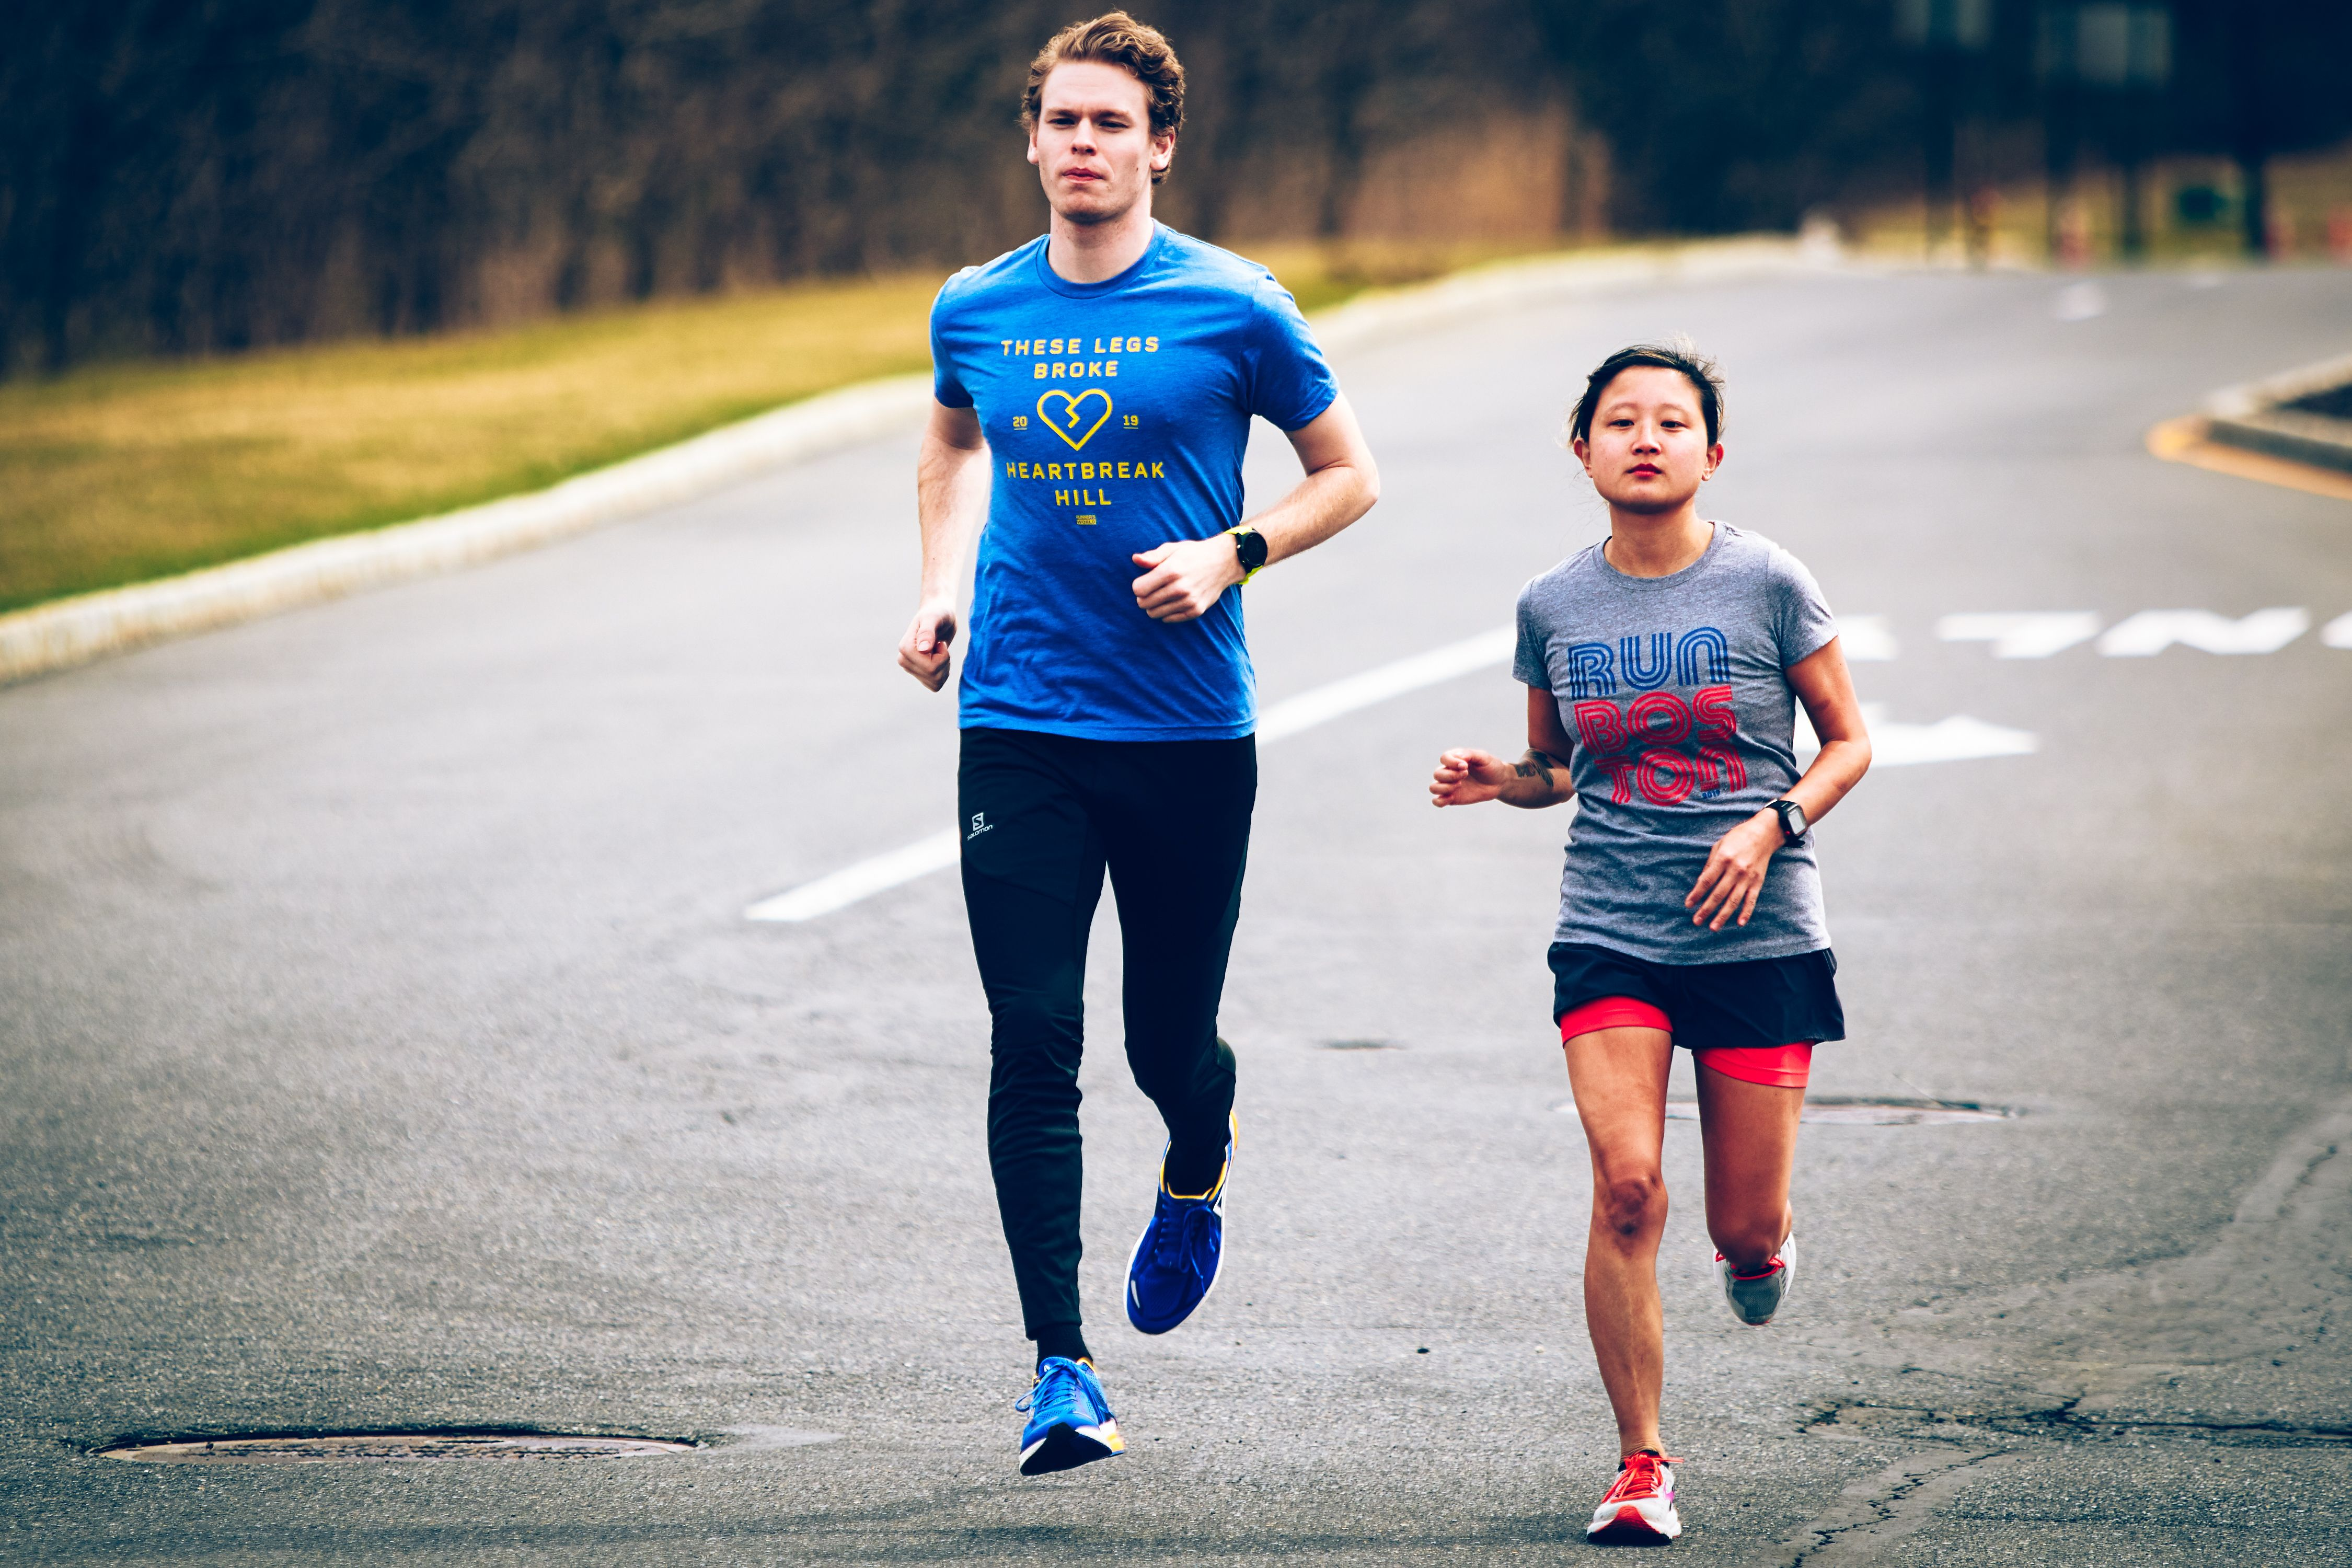 If it's your first marathon, brush up on the basics with these tips.